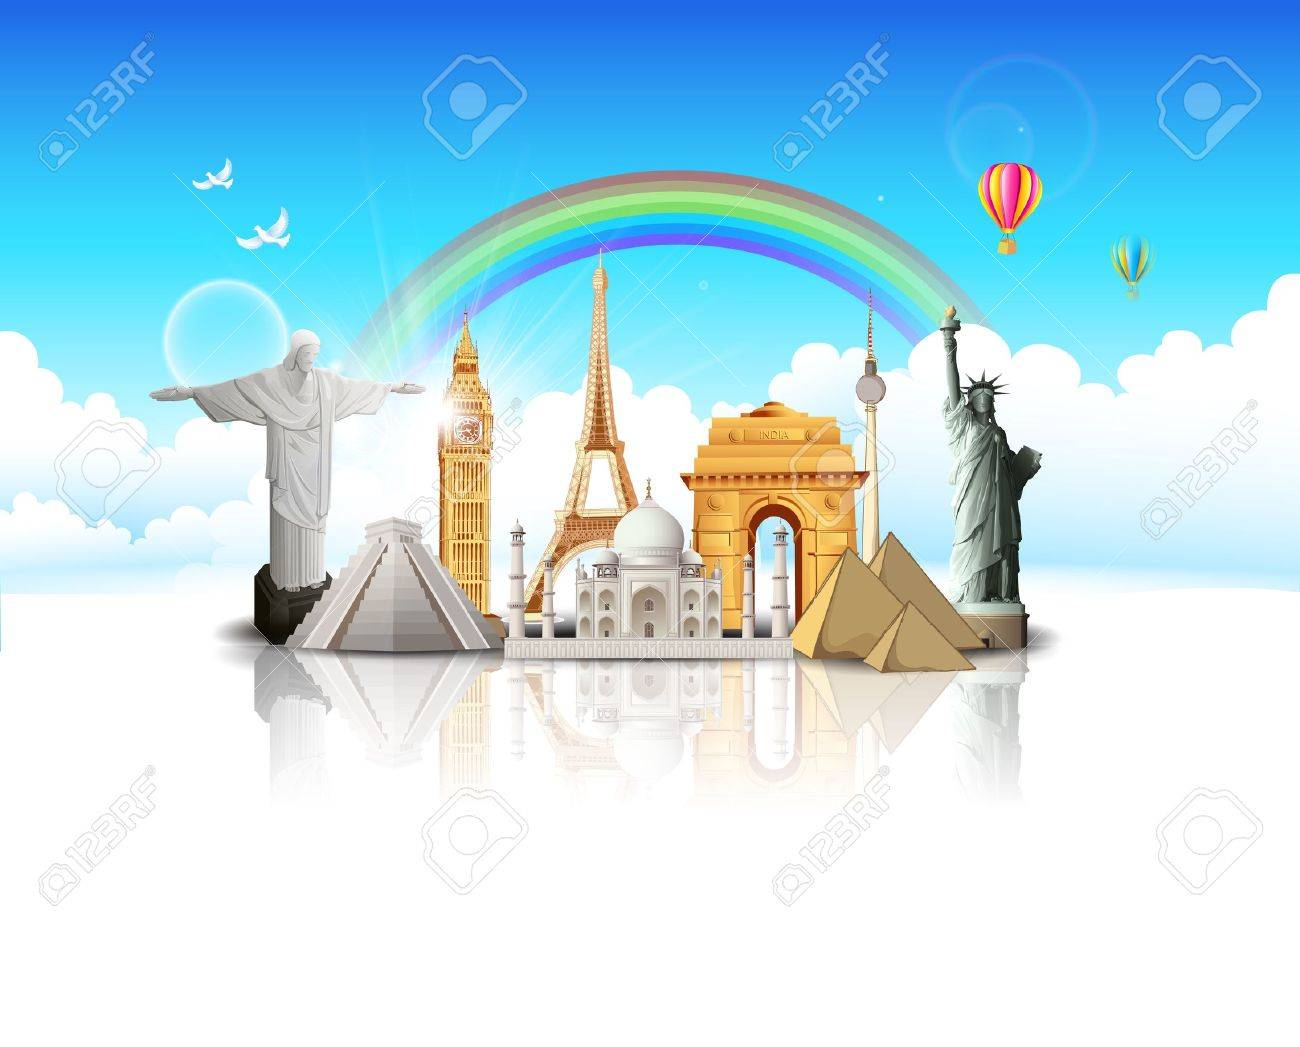 illustration of world famous monument in cloudscape for travel concept Stock Vector - 19372281